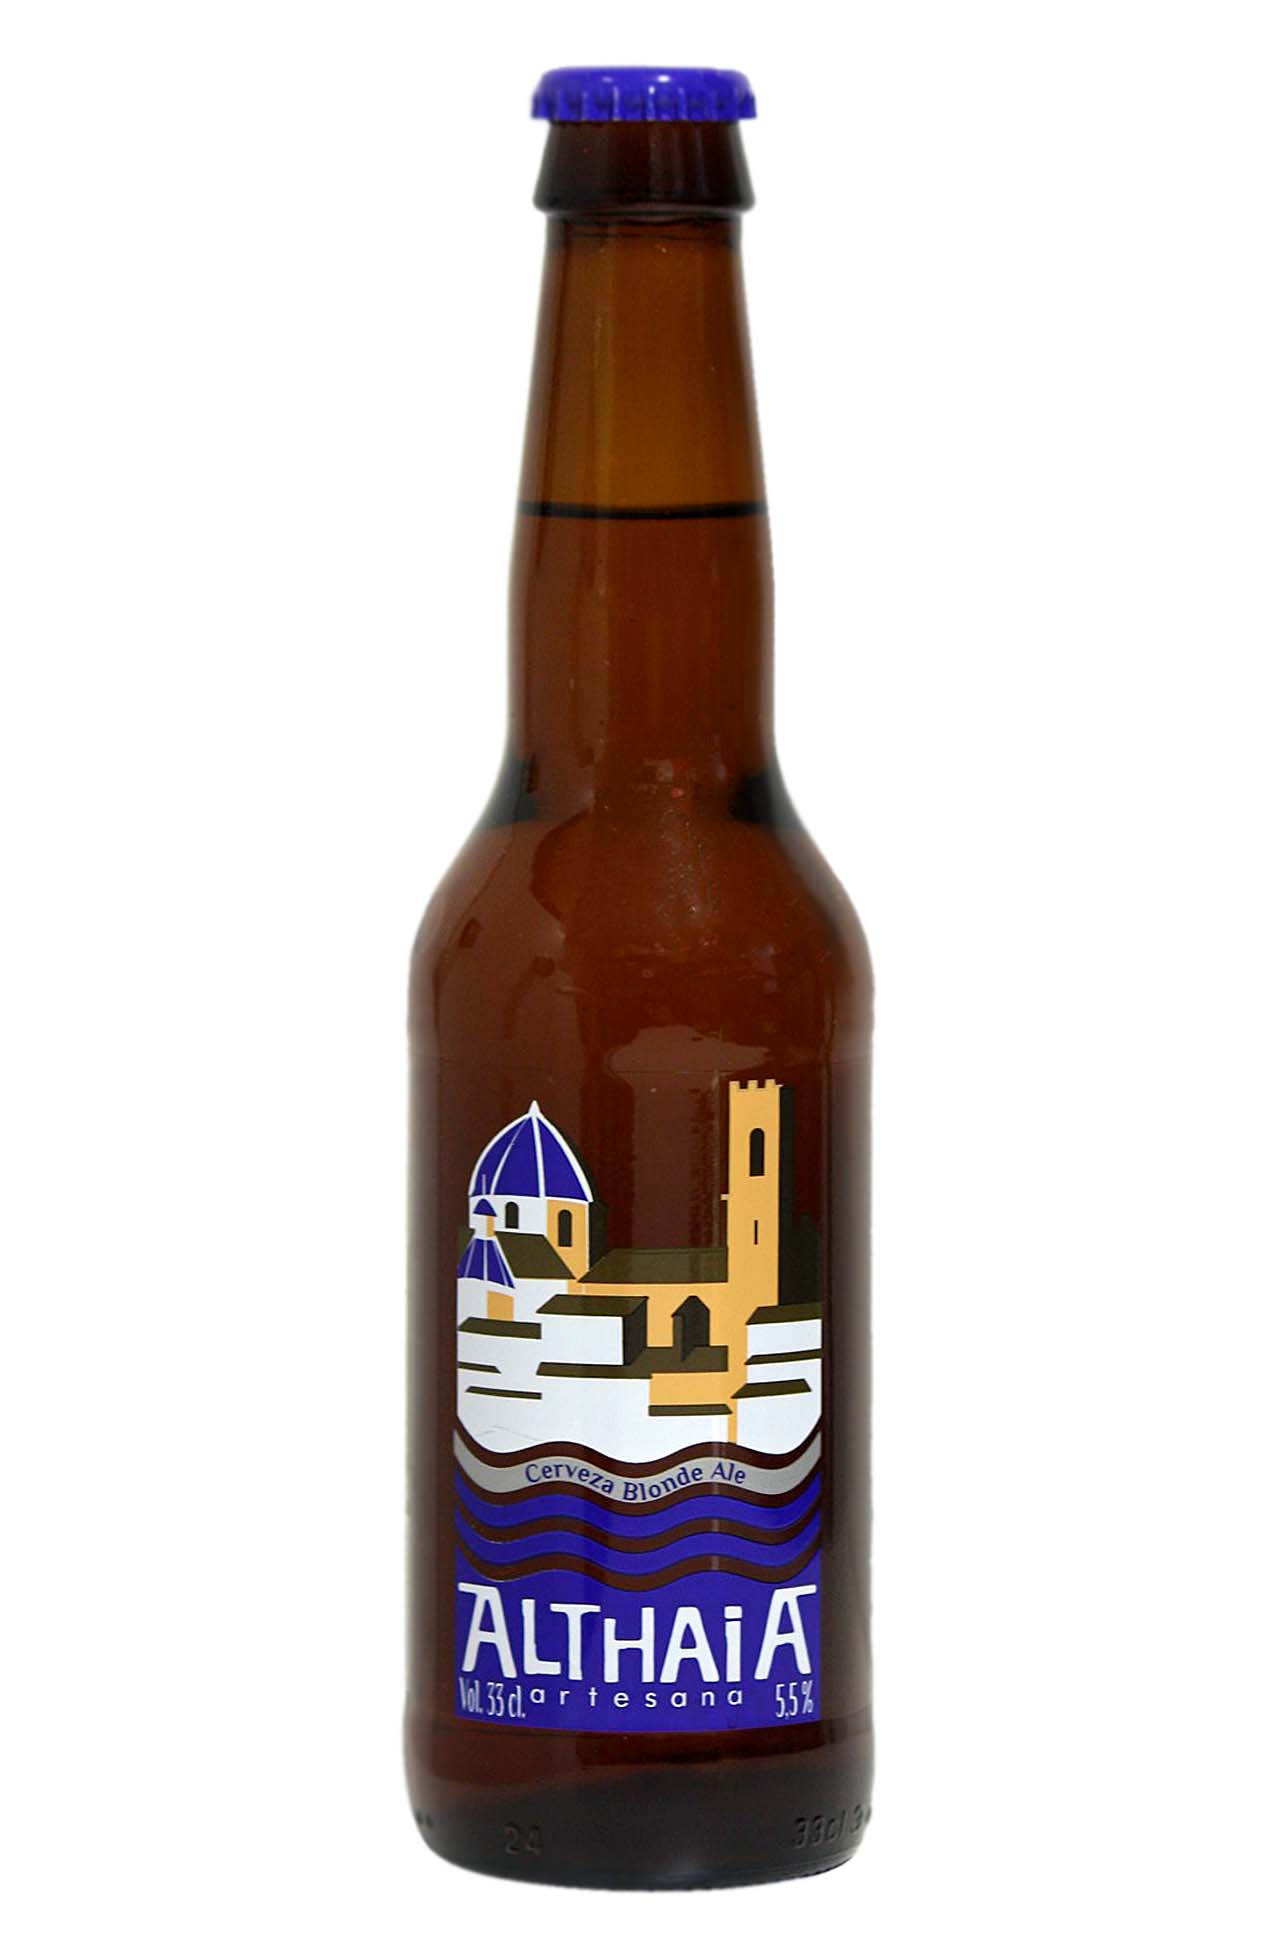 Altahia blonde ale beer